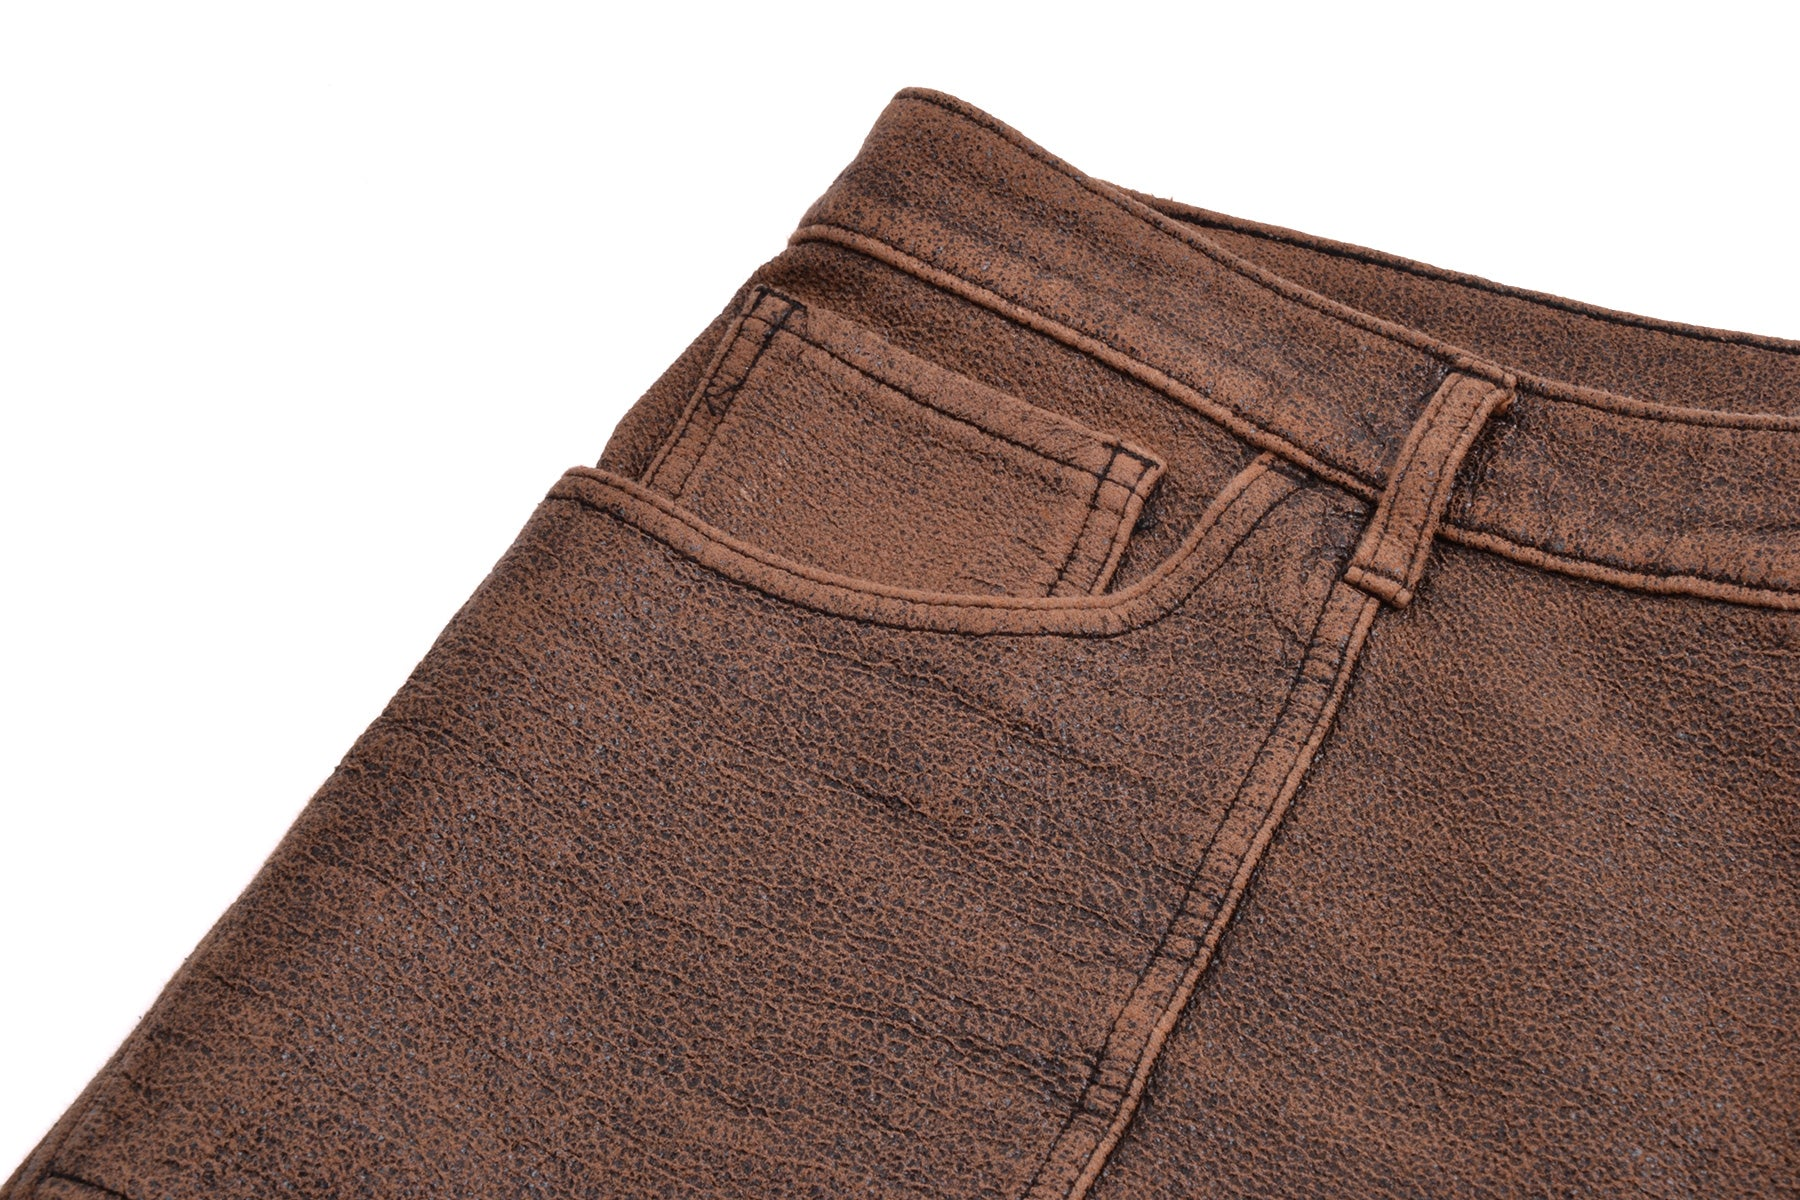 1999 A/W SIMULATED LEATHER BROWN JEANS